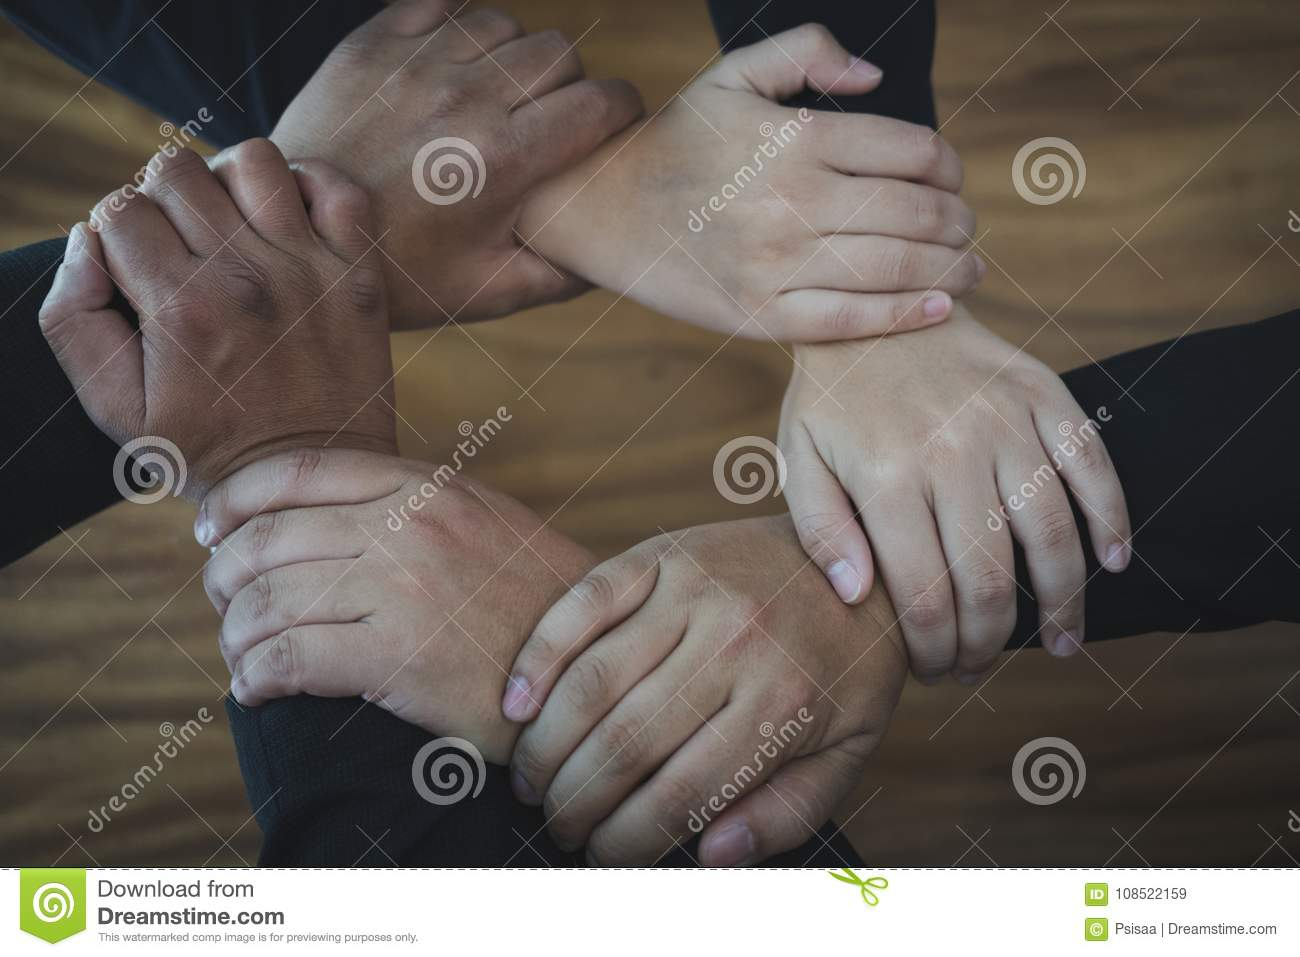 Body Language - Hand Gestures |Touching Hands Together